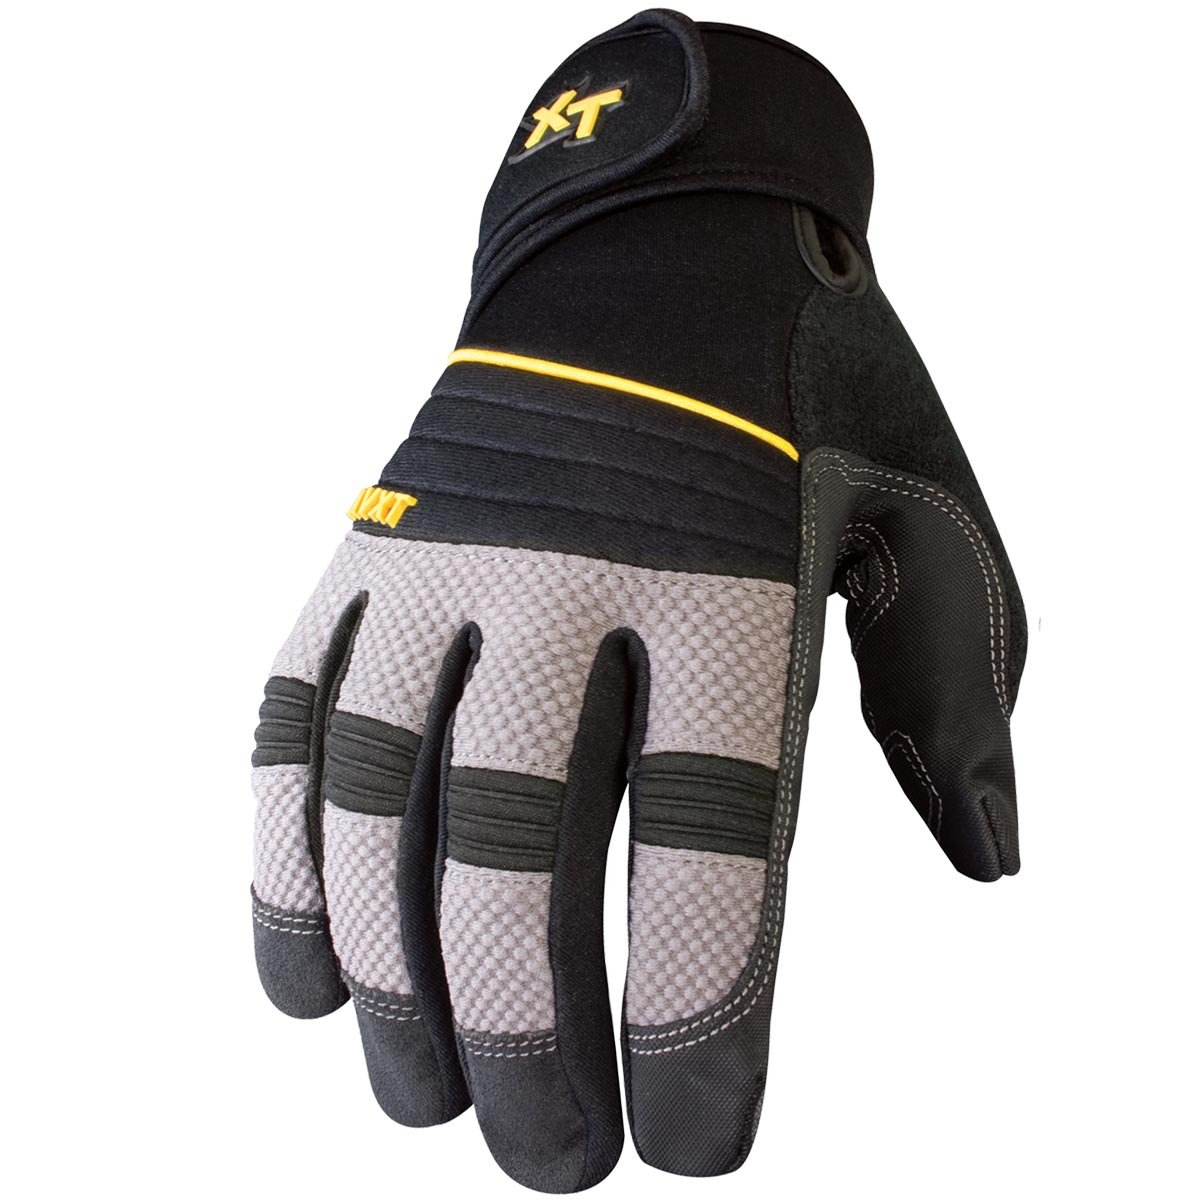 Youngstown Glove 03-3200-78-S Anti-Vibe XT Performance Glove Small